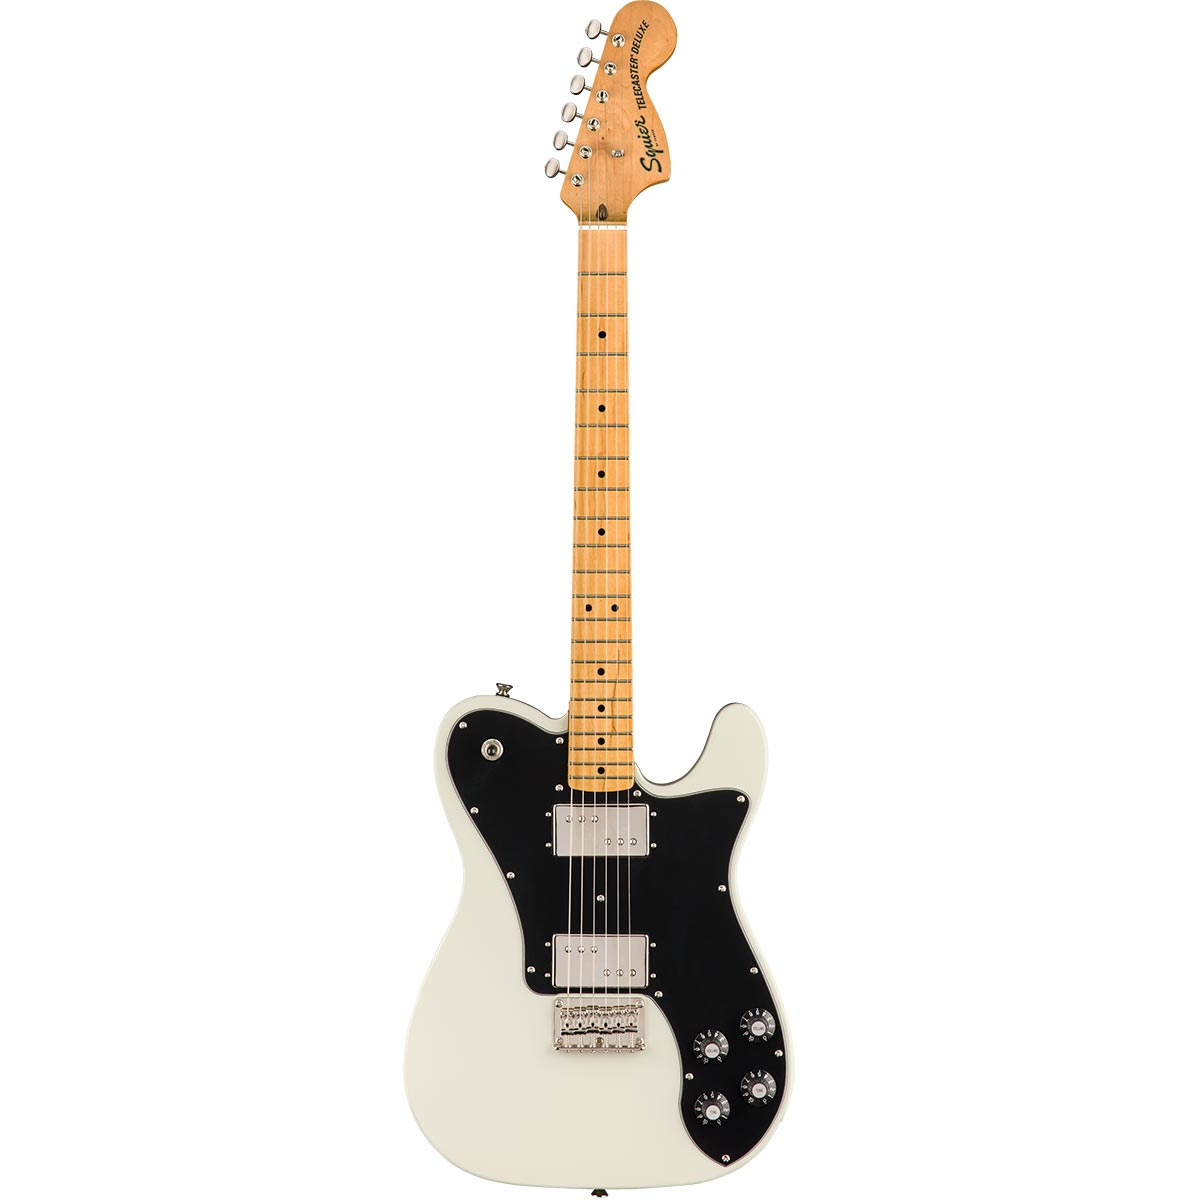 Squier Classic Vibe 70s Telecaster Deluxe MN OWT - Guitarra eléctrica